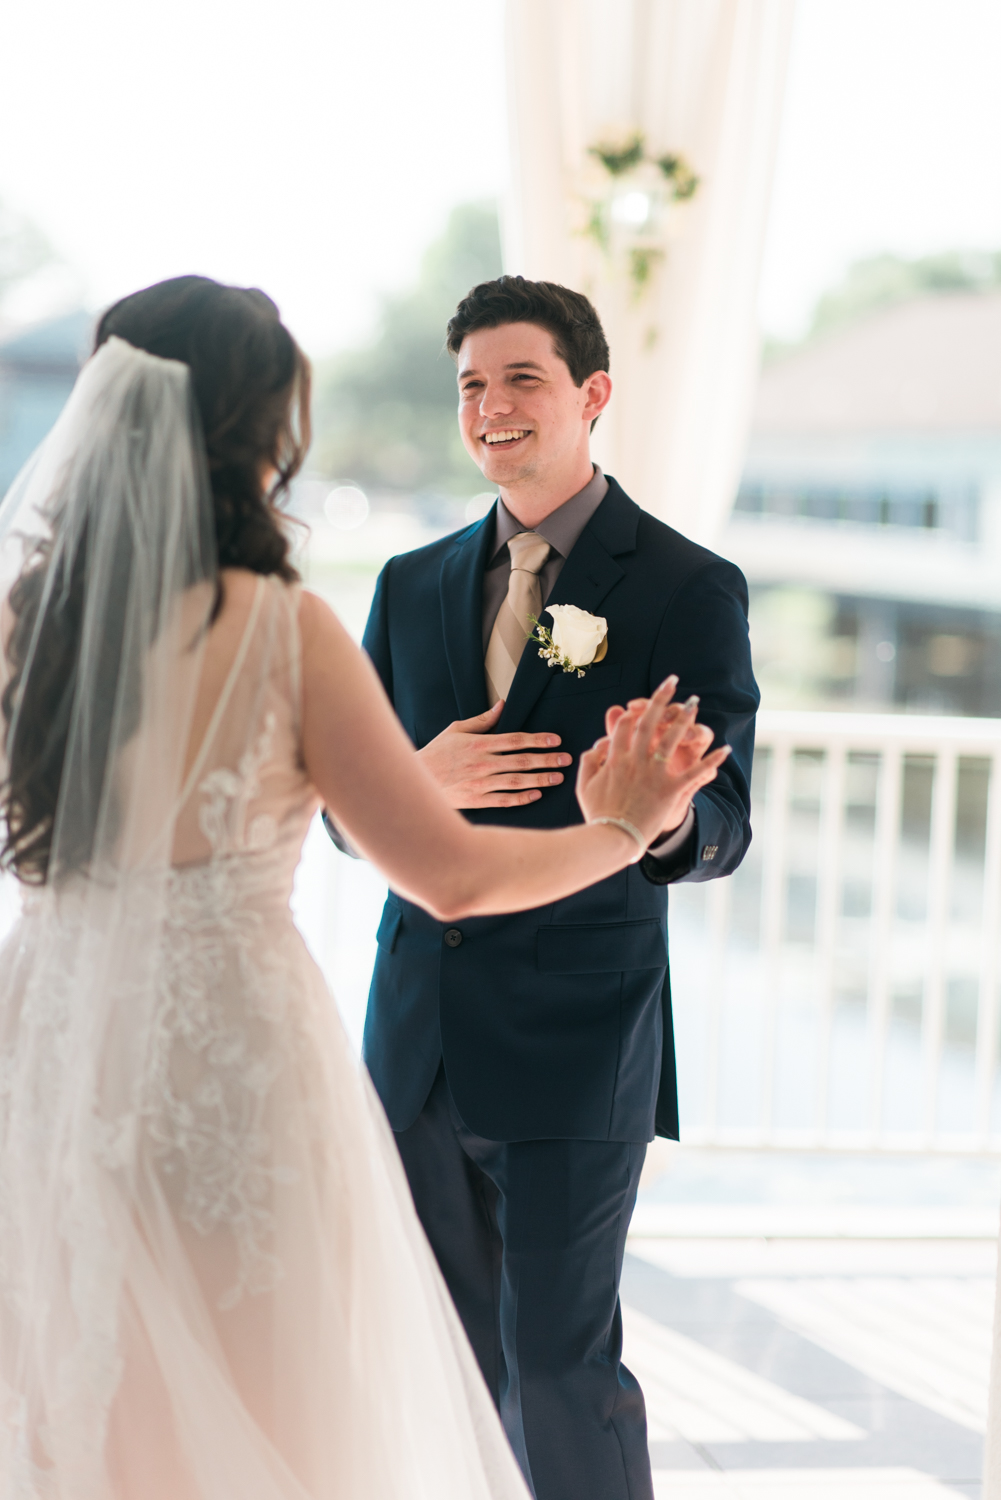 orlando wedding photographer rania marie photo-18.jpg